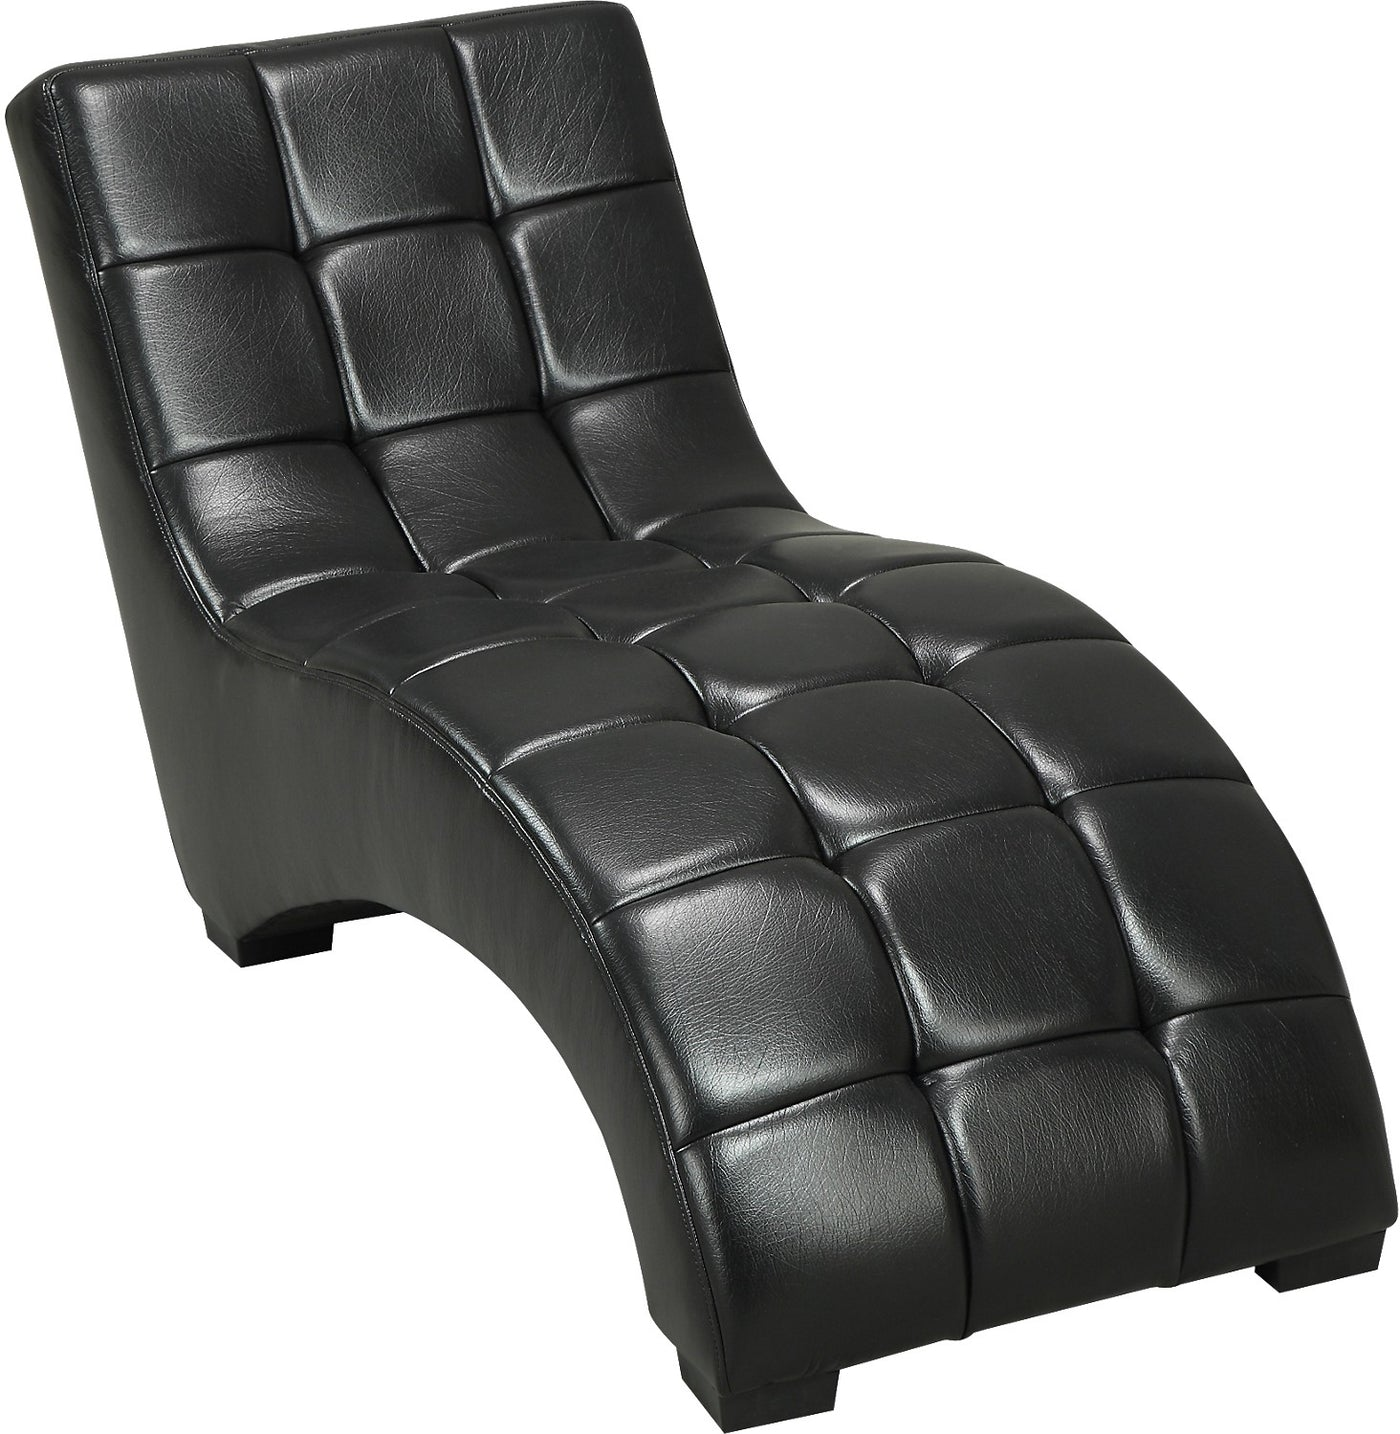 Icon Curved Black Chaise | The Brick on black nightstand, black microfiber sofa, black reclining sofa, black rug, black sleep, black corner, black wardrobe, black yeti, black clock, black hammock, black armoire, black ottoman, black mattress, black coach, black buffet, black pillow, black chair, black hutch, black wicker, black hearse,